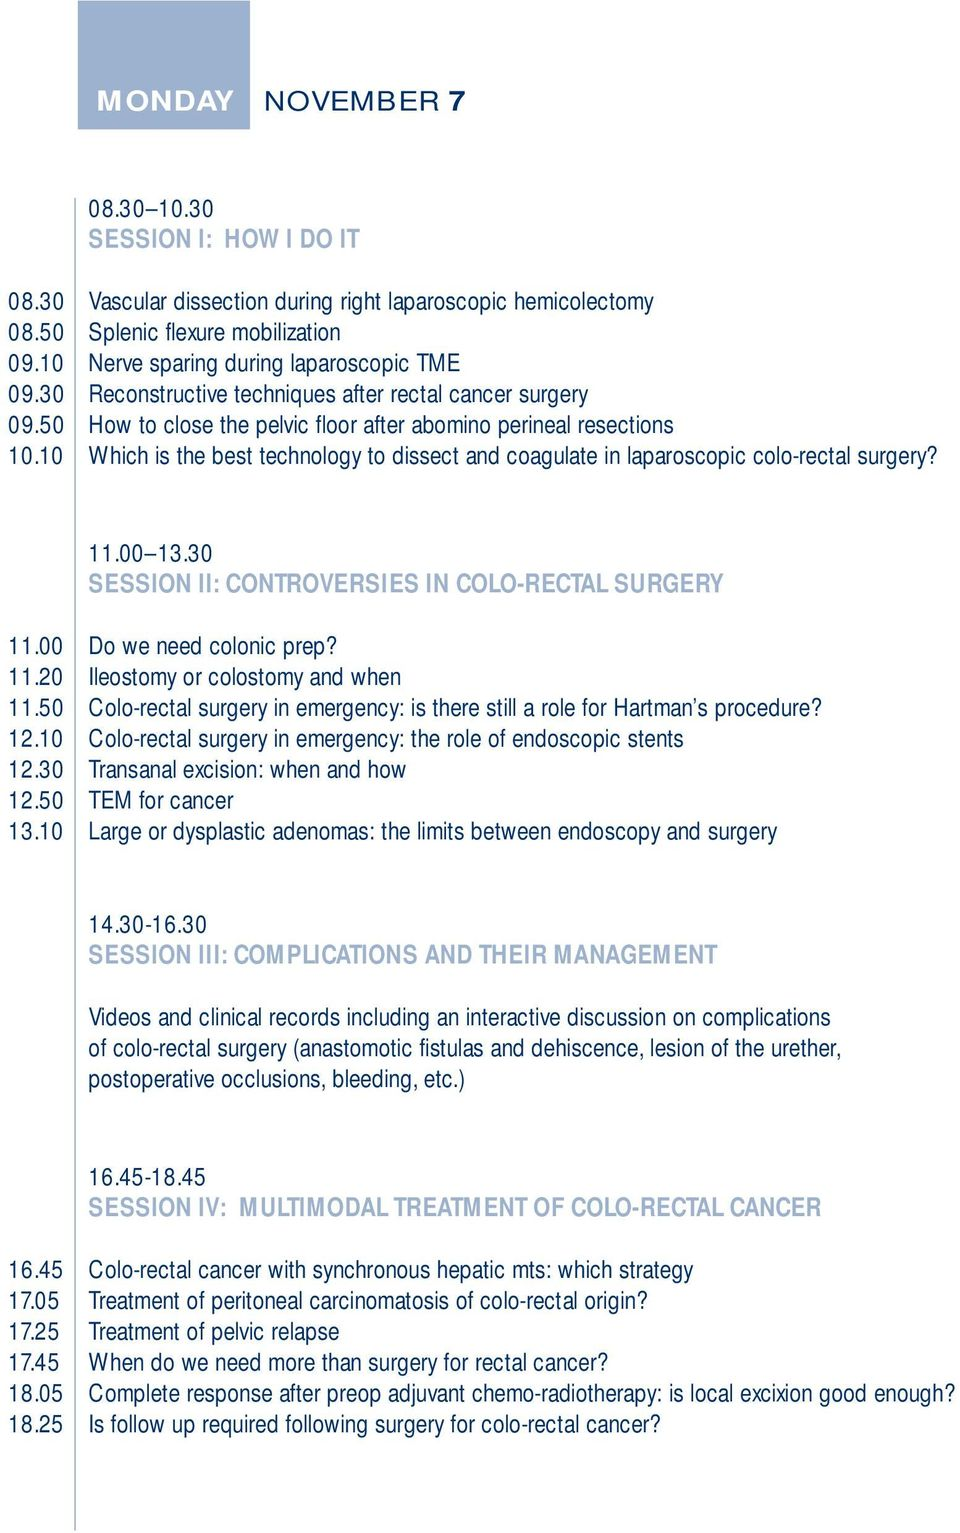 10 Which is the best technology to dissect and coagulate in laparoscopic colo-rectal surgery? 11.00 13.30 SESSION II: CONTROVERSIES IN COLO-RECTAL SURGERY 11.00 Do we need colonic prep? 11.20 Ileostomy or colostomy and when 11.